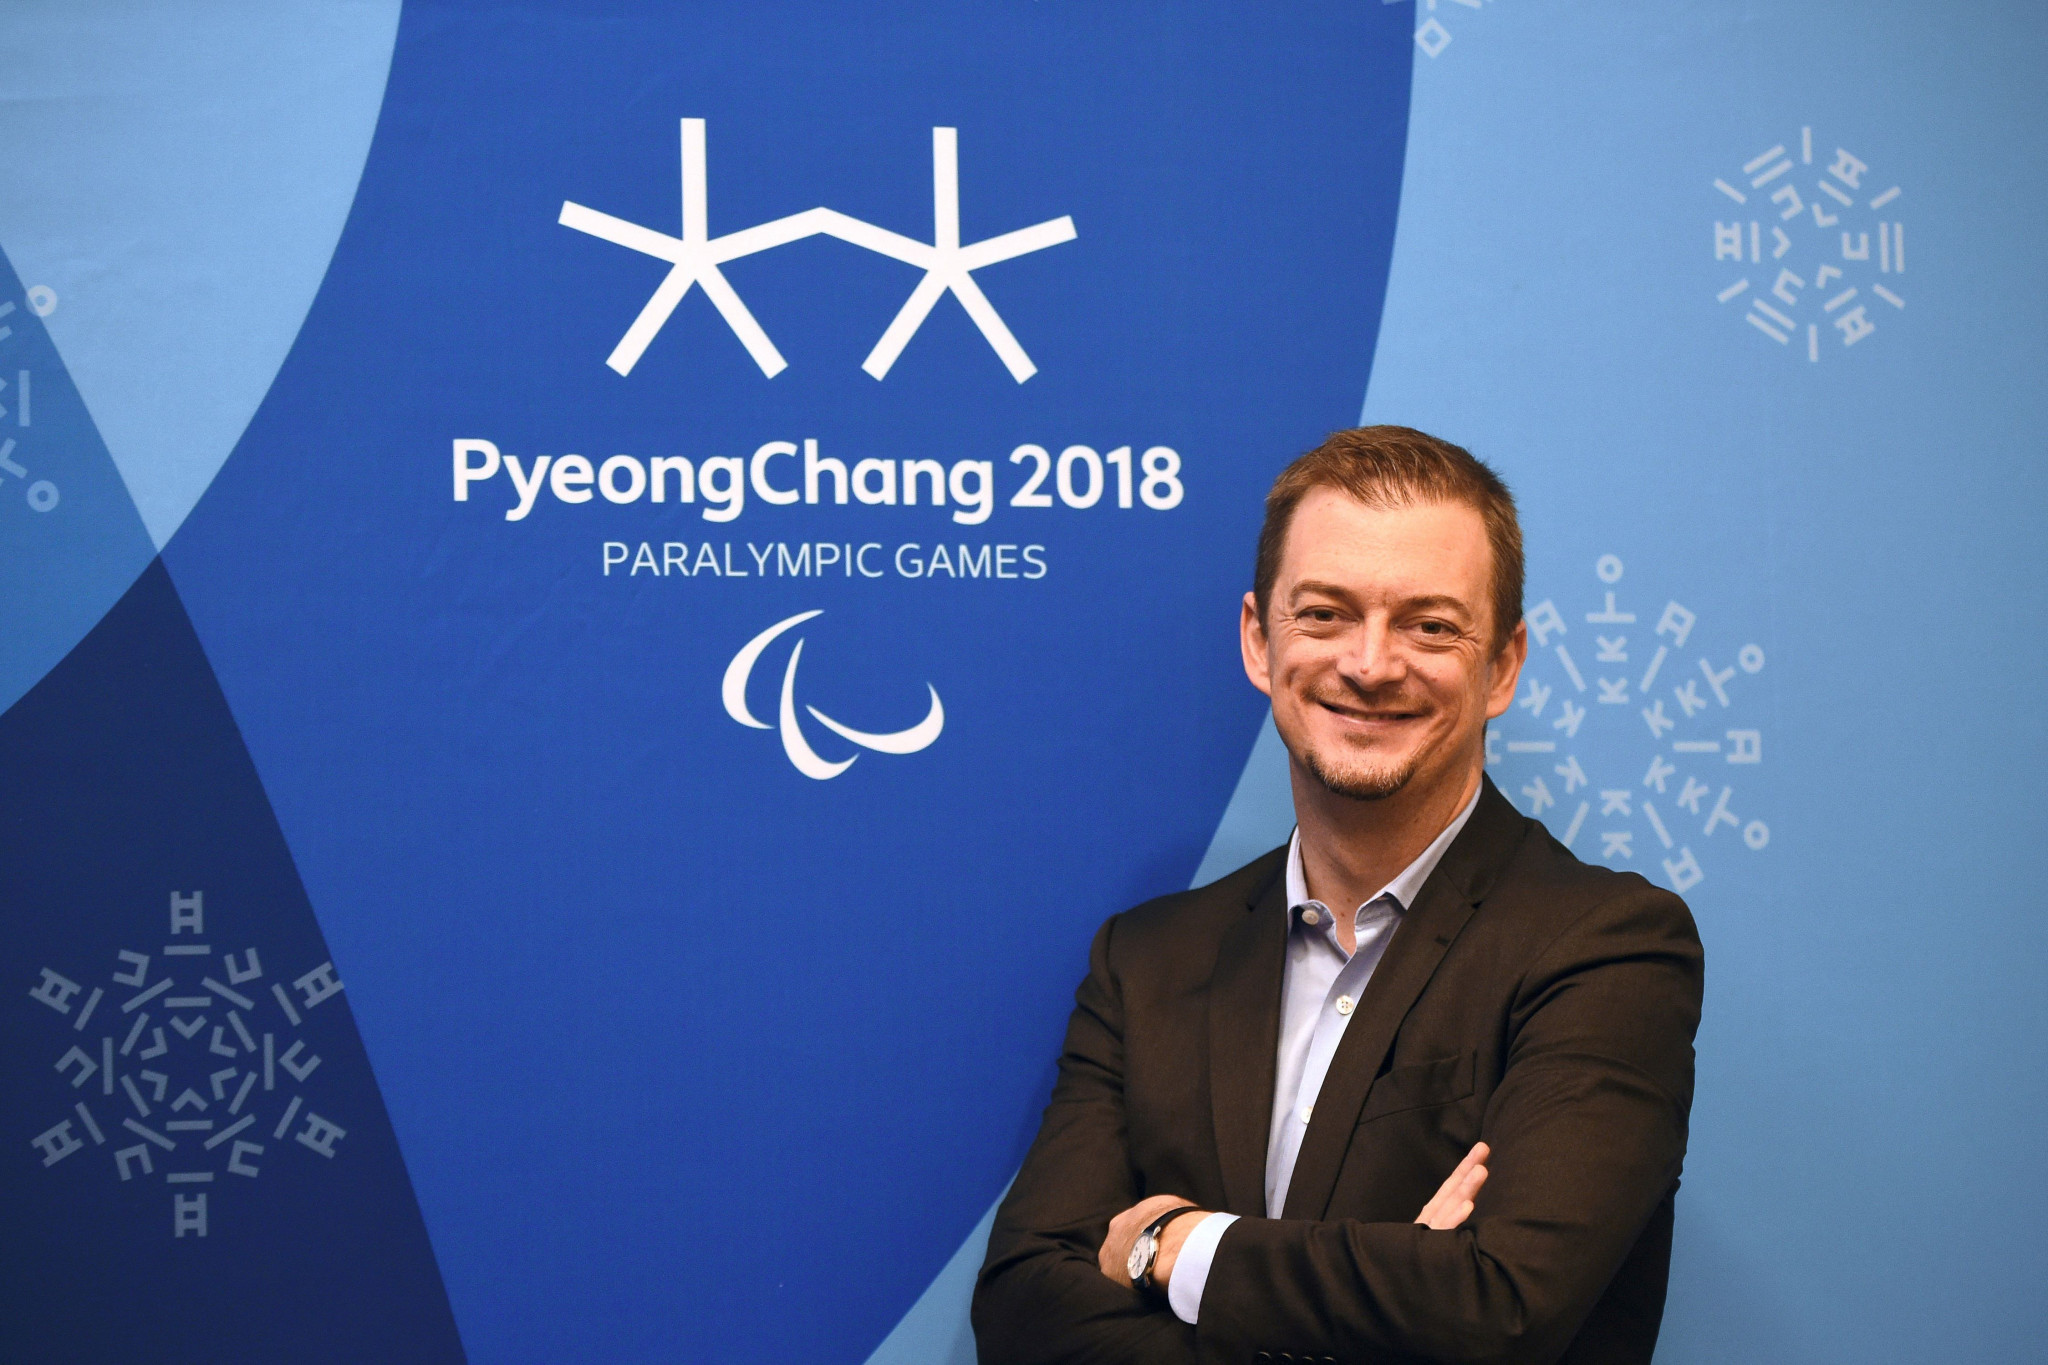 IPC President Andrew Parsons believes South Korea has reacted positively to the Pyeongchang 2018 Winter Paralympics ©Getty Images